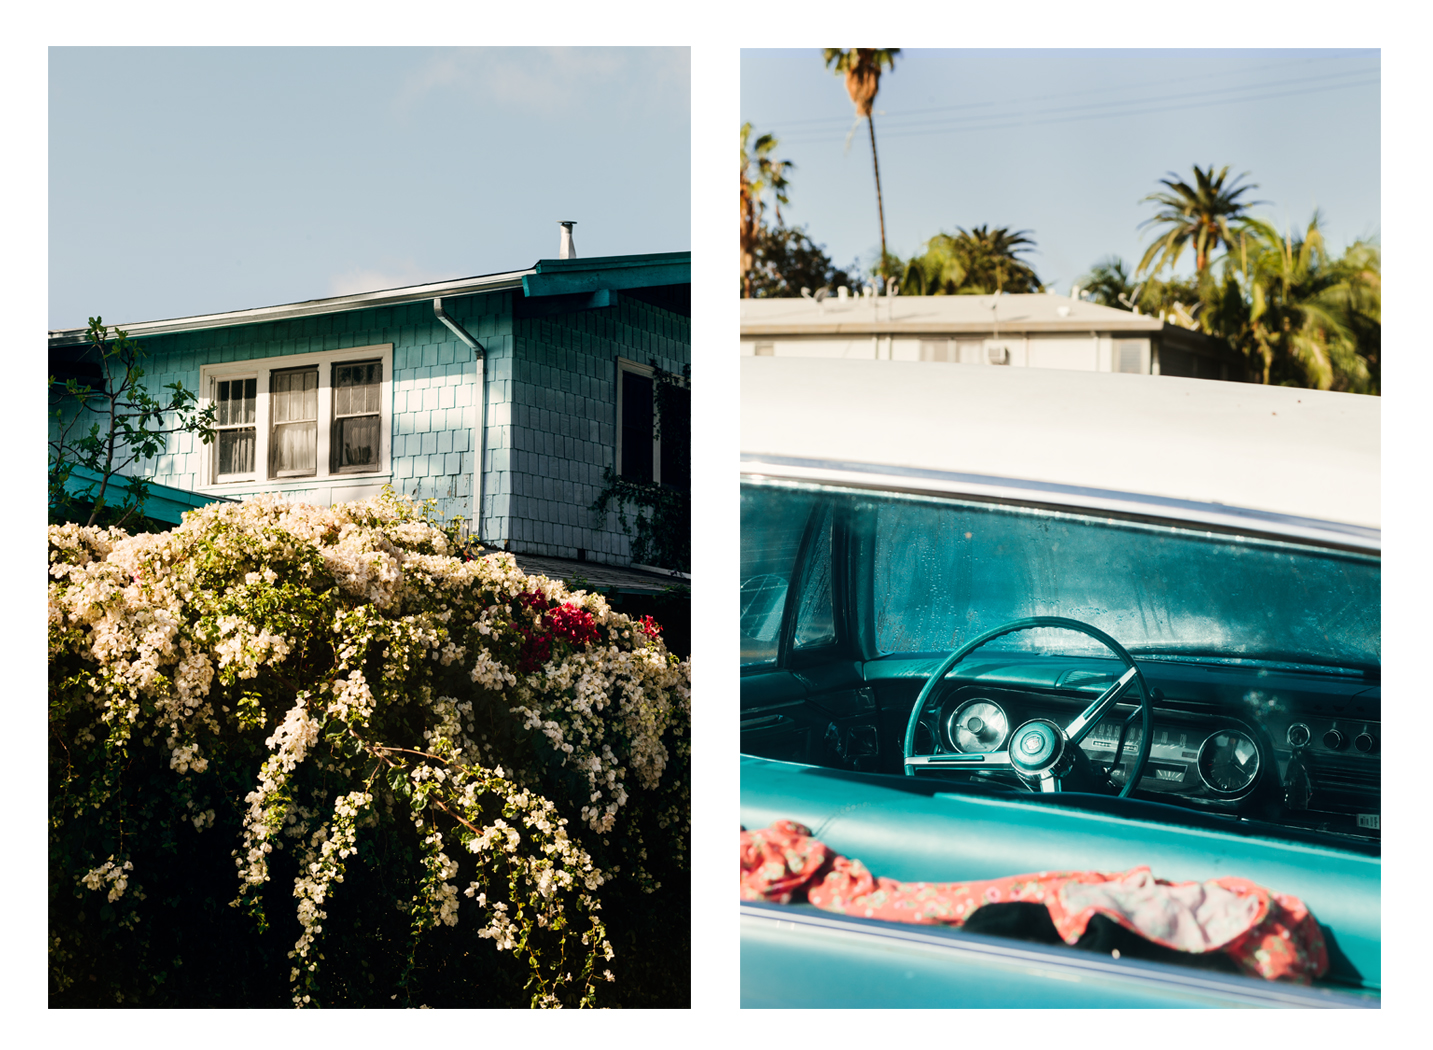 Los Feliz neighborhood, Los Angeles. Brad Torchia is an LA-based photographer.